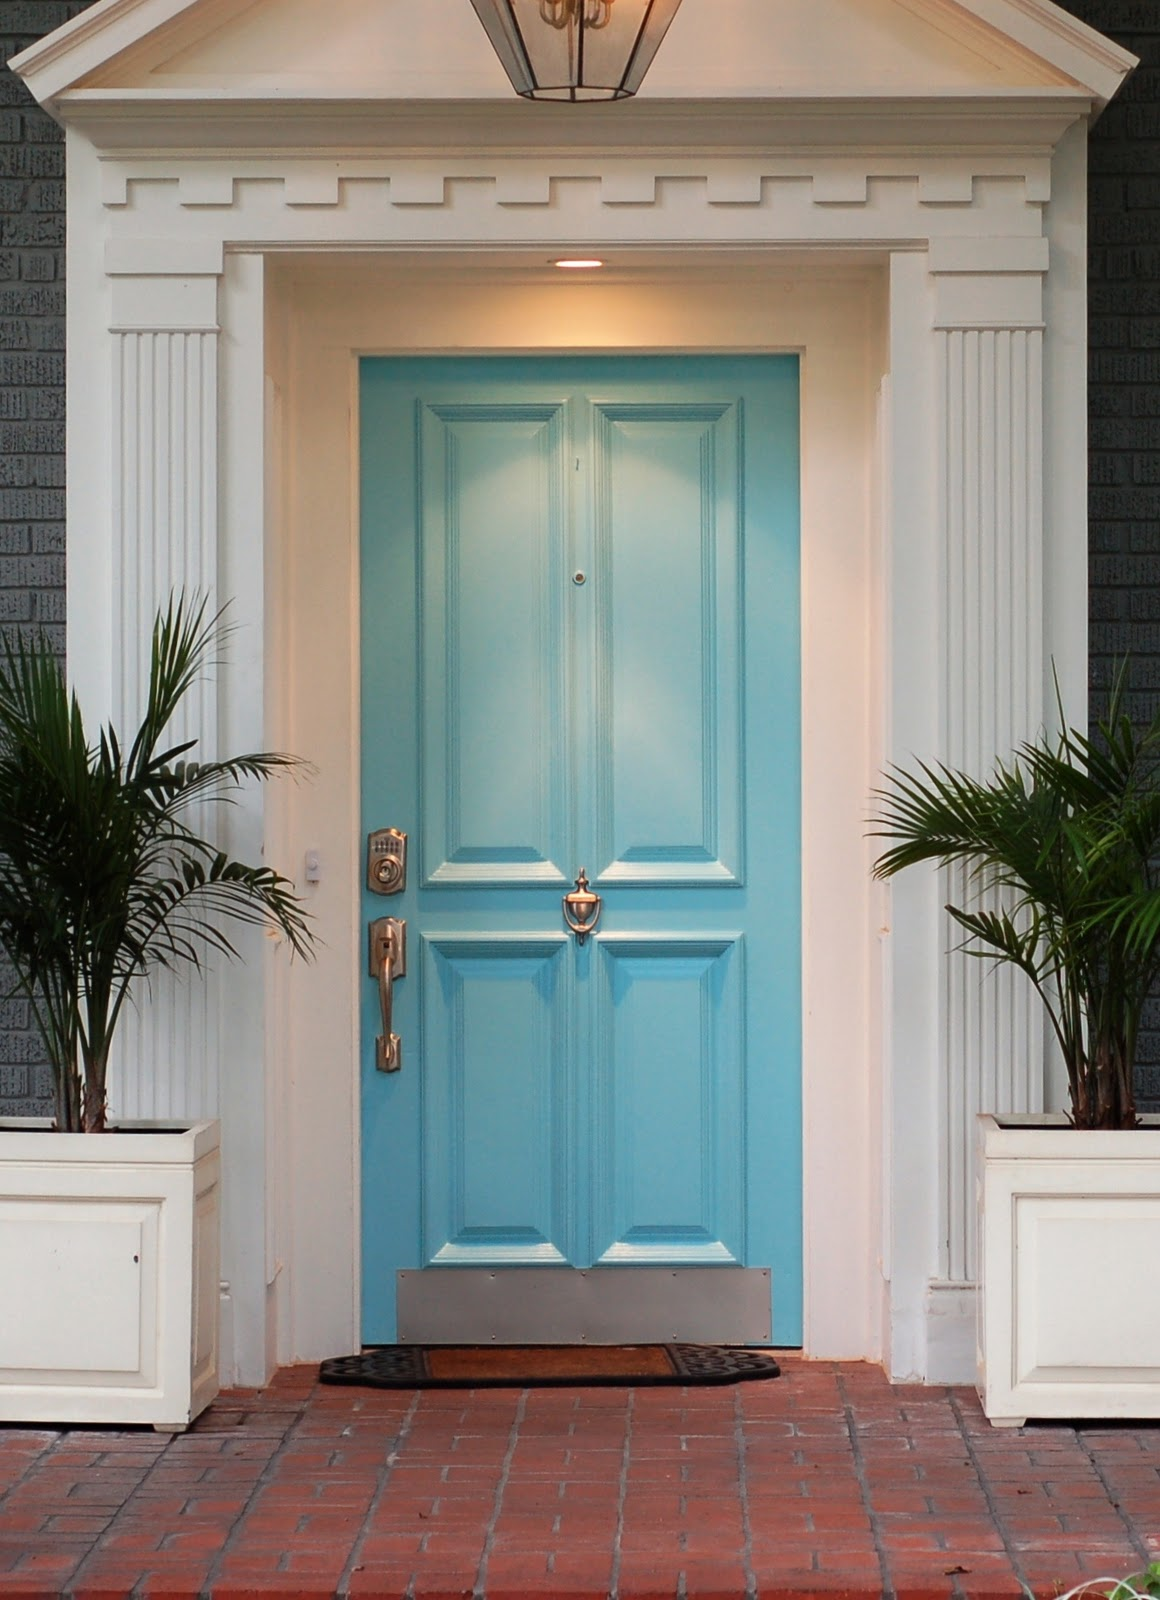 North dallas real estate front door colors to help sell for House front entry doors